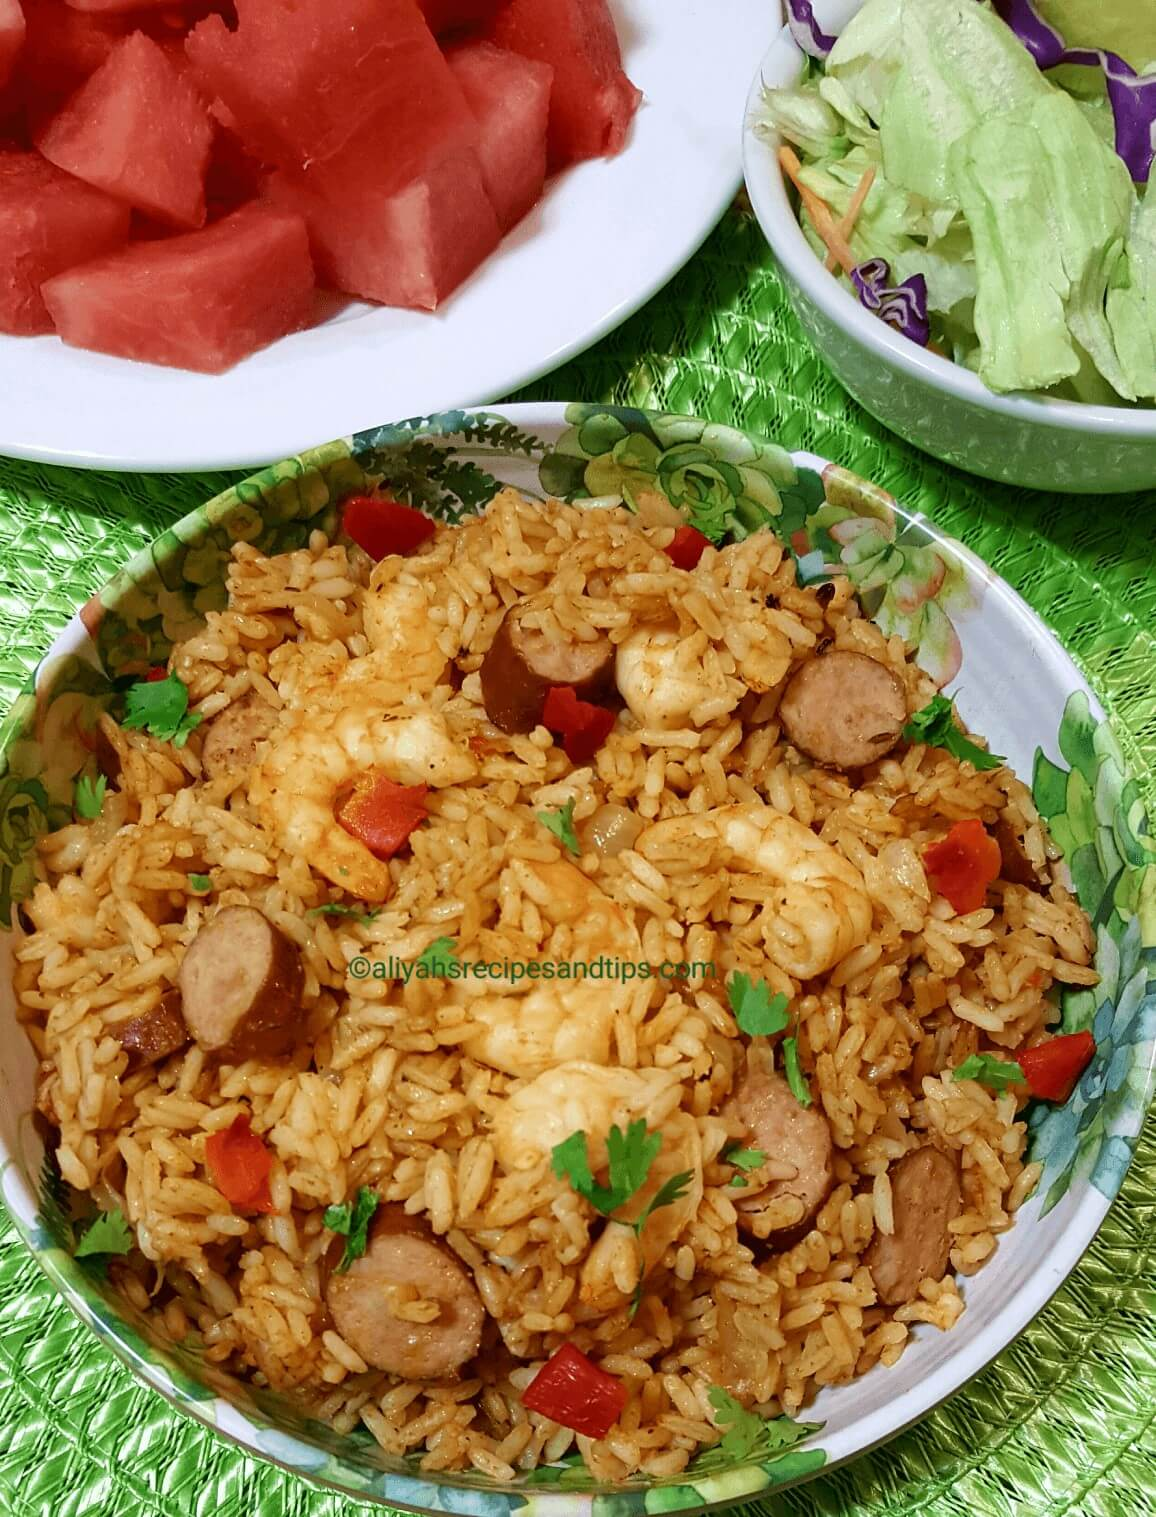 Sausage and Shrimps Jambalaya, jambalaya, dutch oven, Louisiana style, dirty rice, Cajun, Authentic, New Orleans style easy, seafood, recipe, louisiana,